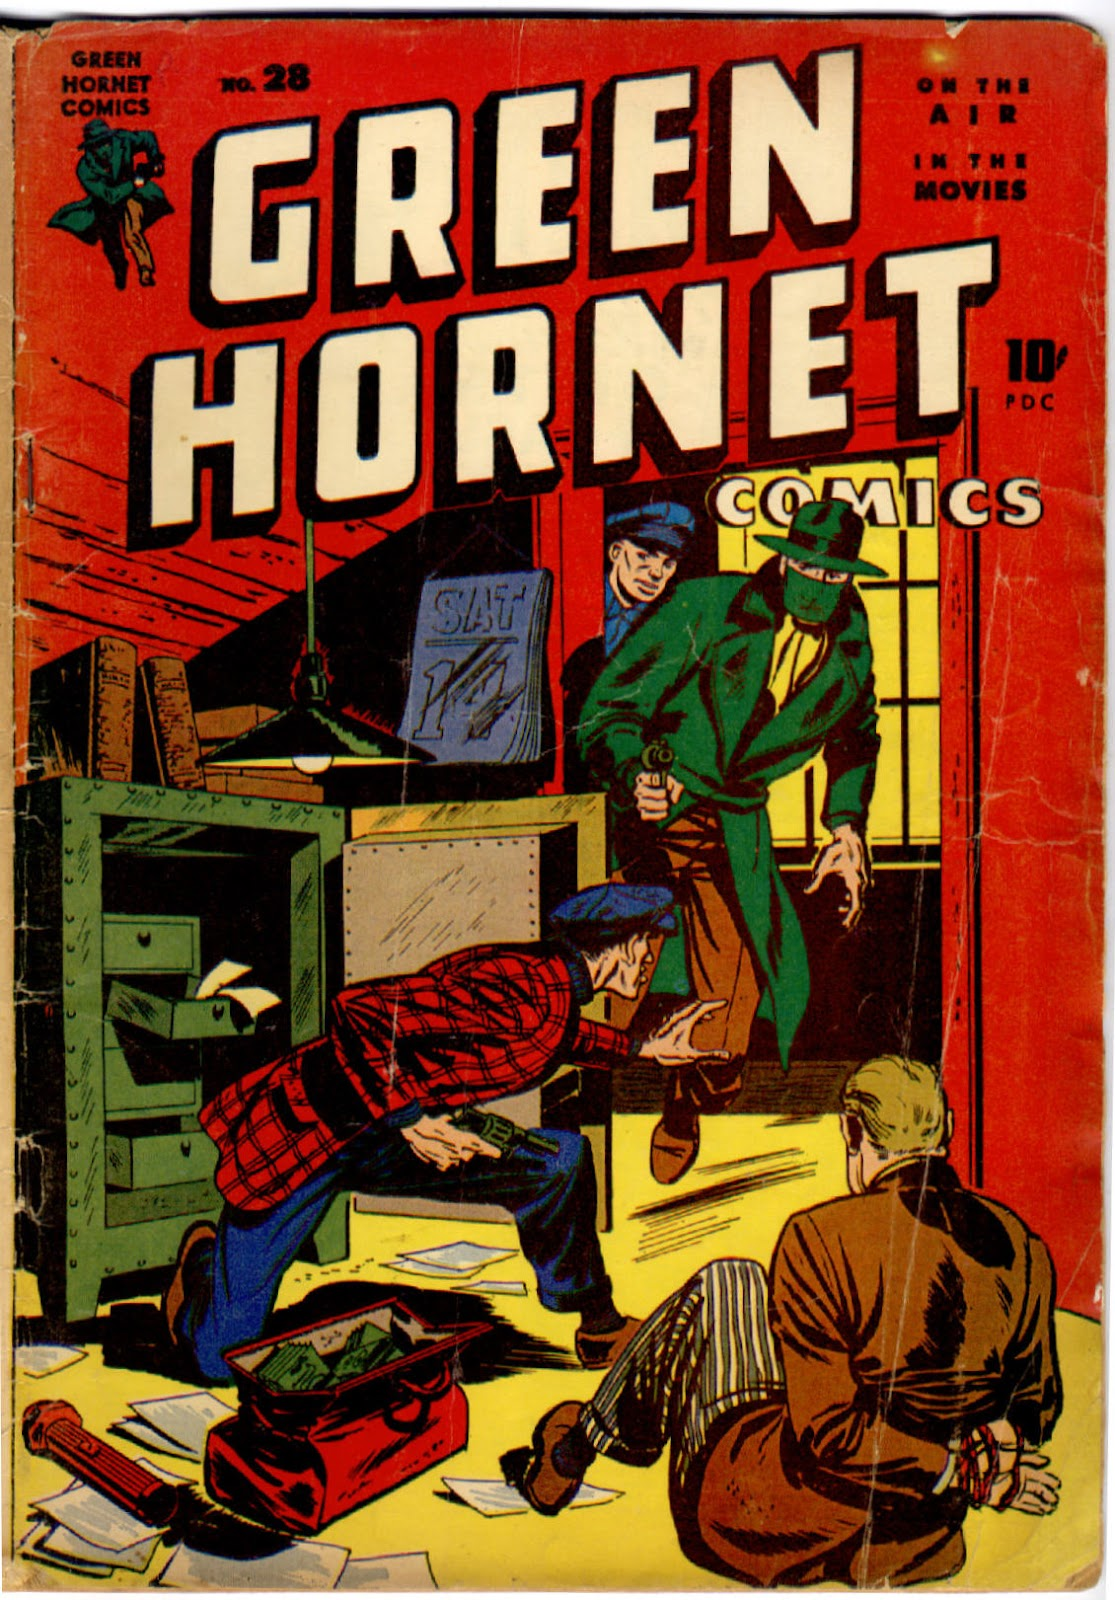 Green Hornet Comics issue 28 - Page 1